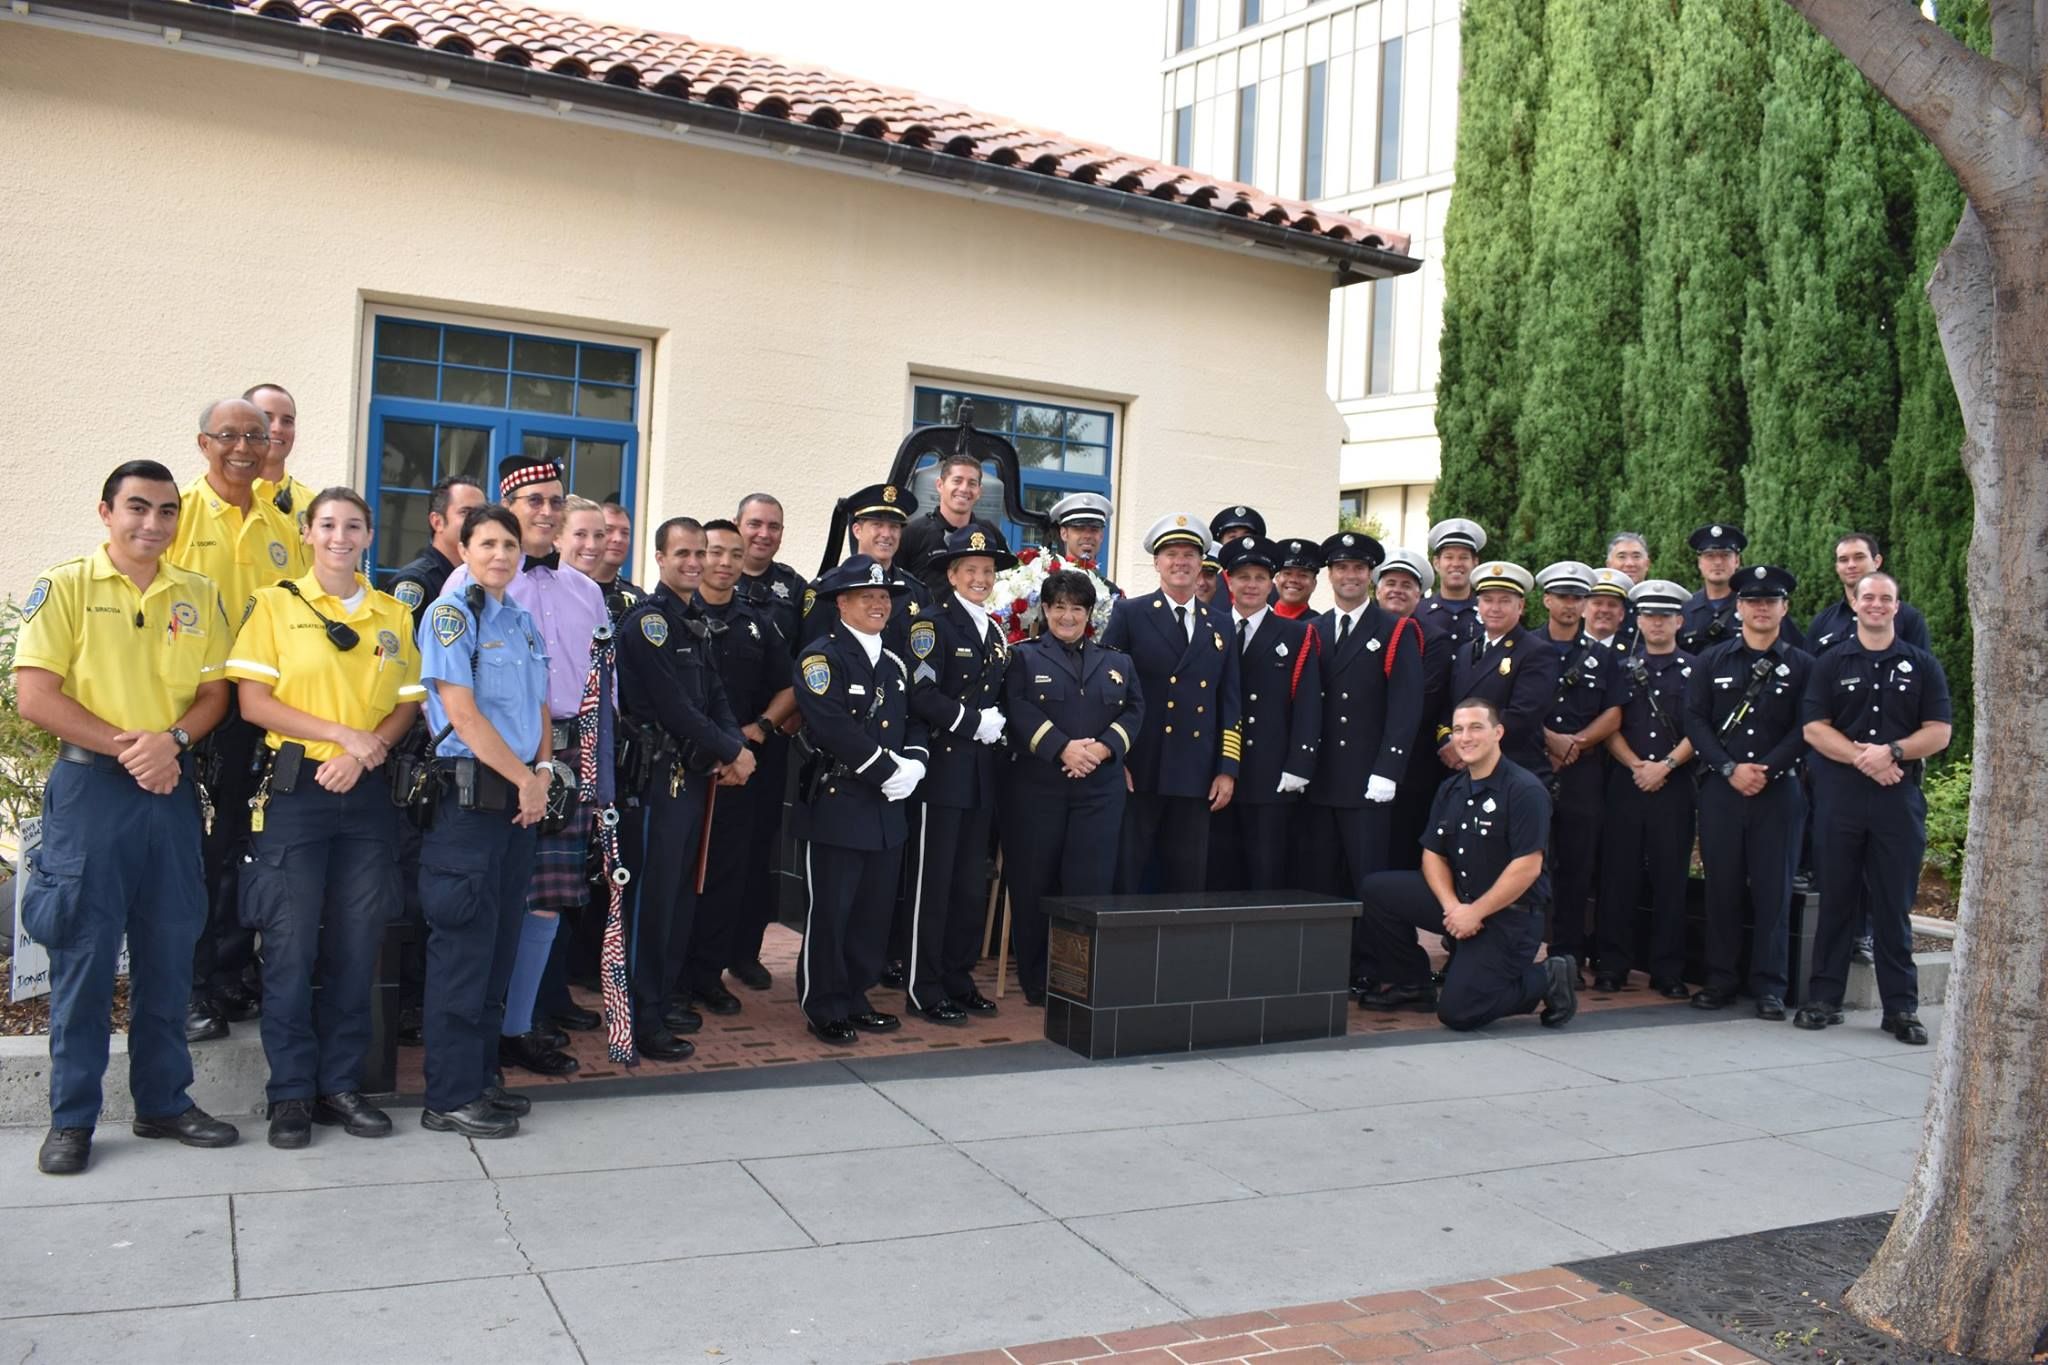 <div class='meta'><div class='origin-logo' data-origin='none'></div><span class='caption-text' data-credit='San Mateo Police Department/Facebook'>Members of the police and fire department joined together at Fire Station 21 in San Mateo, Calif. on Monday, Sept. 11, 2017 to pay tribute to the victims of 9/11.</span></div>